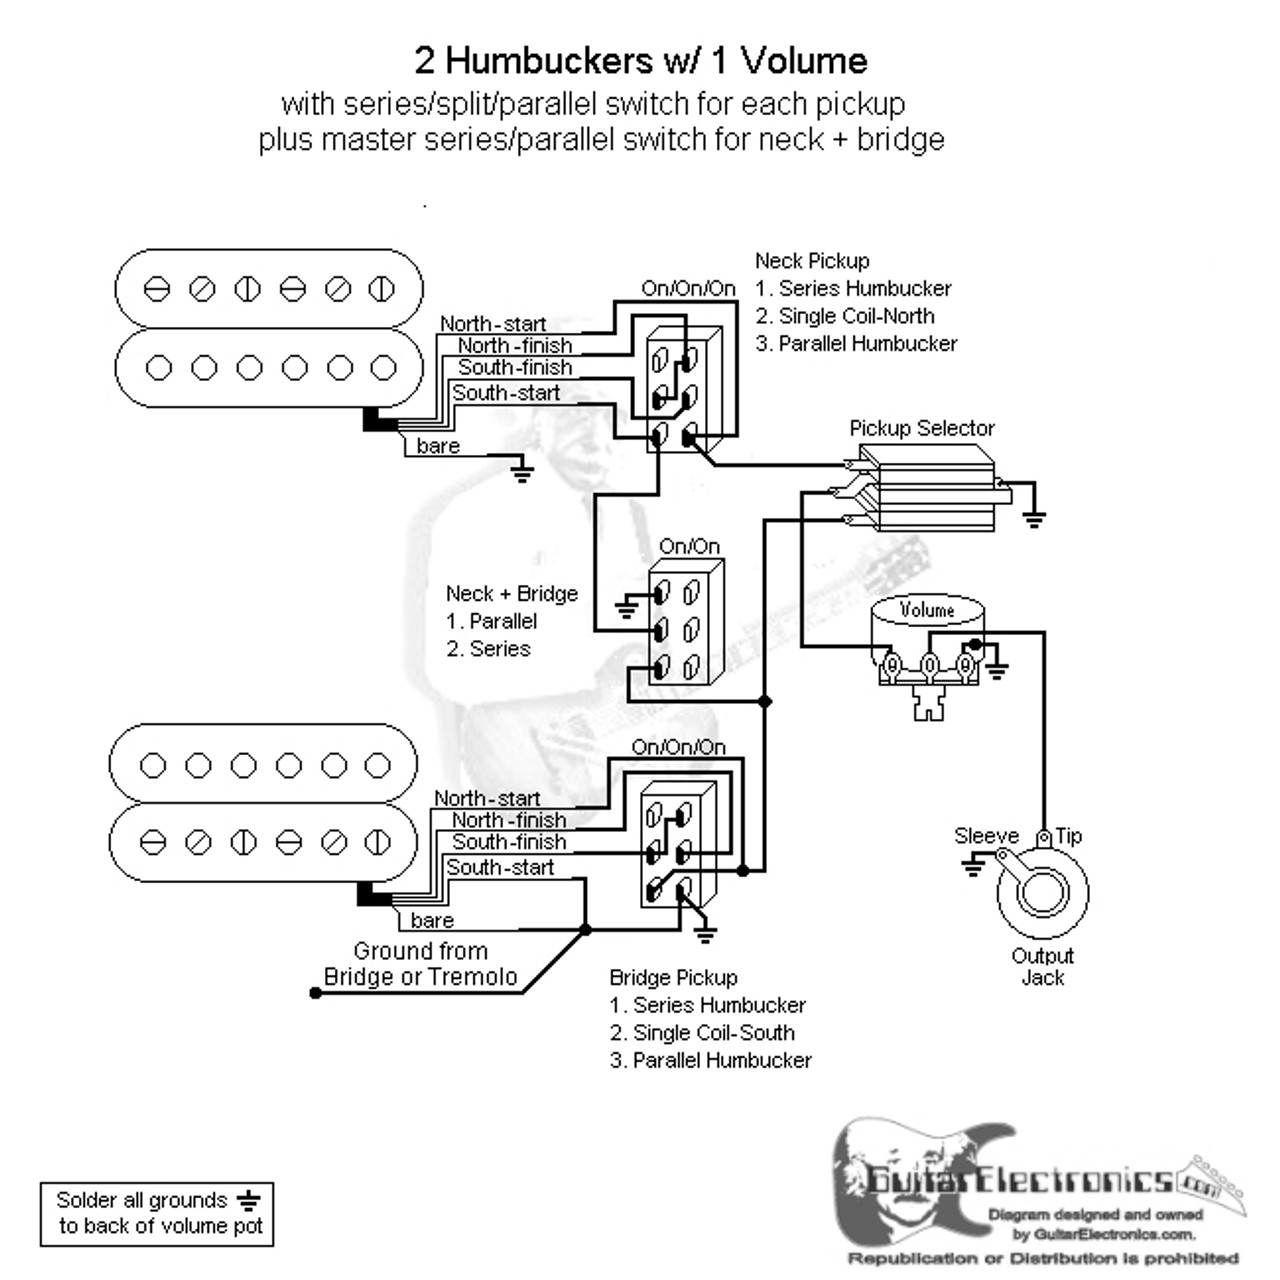 Fine Toggle Switch For Humbucker Split Into Single Coils Diagram Photo Wiring 101 Akebretraxxcnl